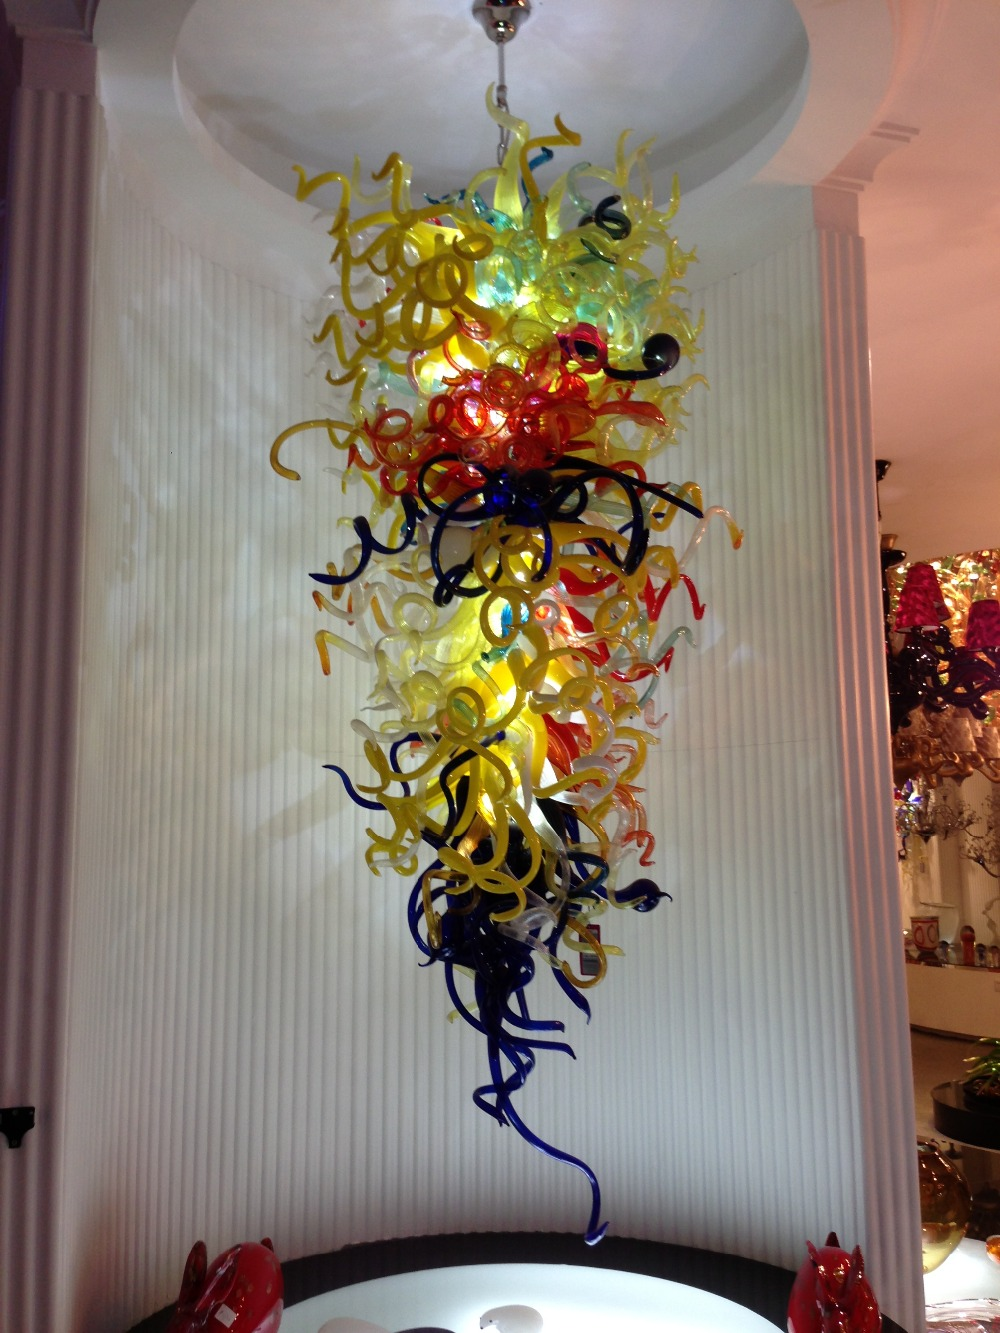 Glass Lamp Art Us 2000 Large Hotel Chandelier Chihuly Art Glass Lamp For New Year Decor Multi Color Blown Glass Chandelier Lighting In Chandeliers From Lights